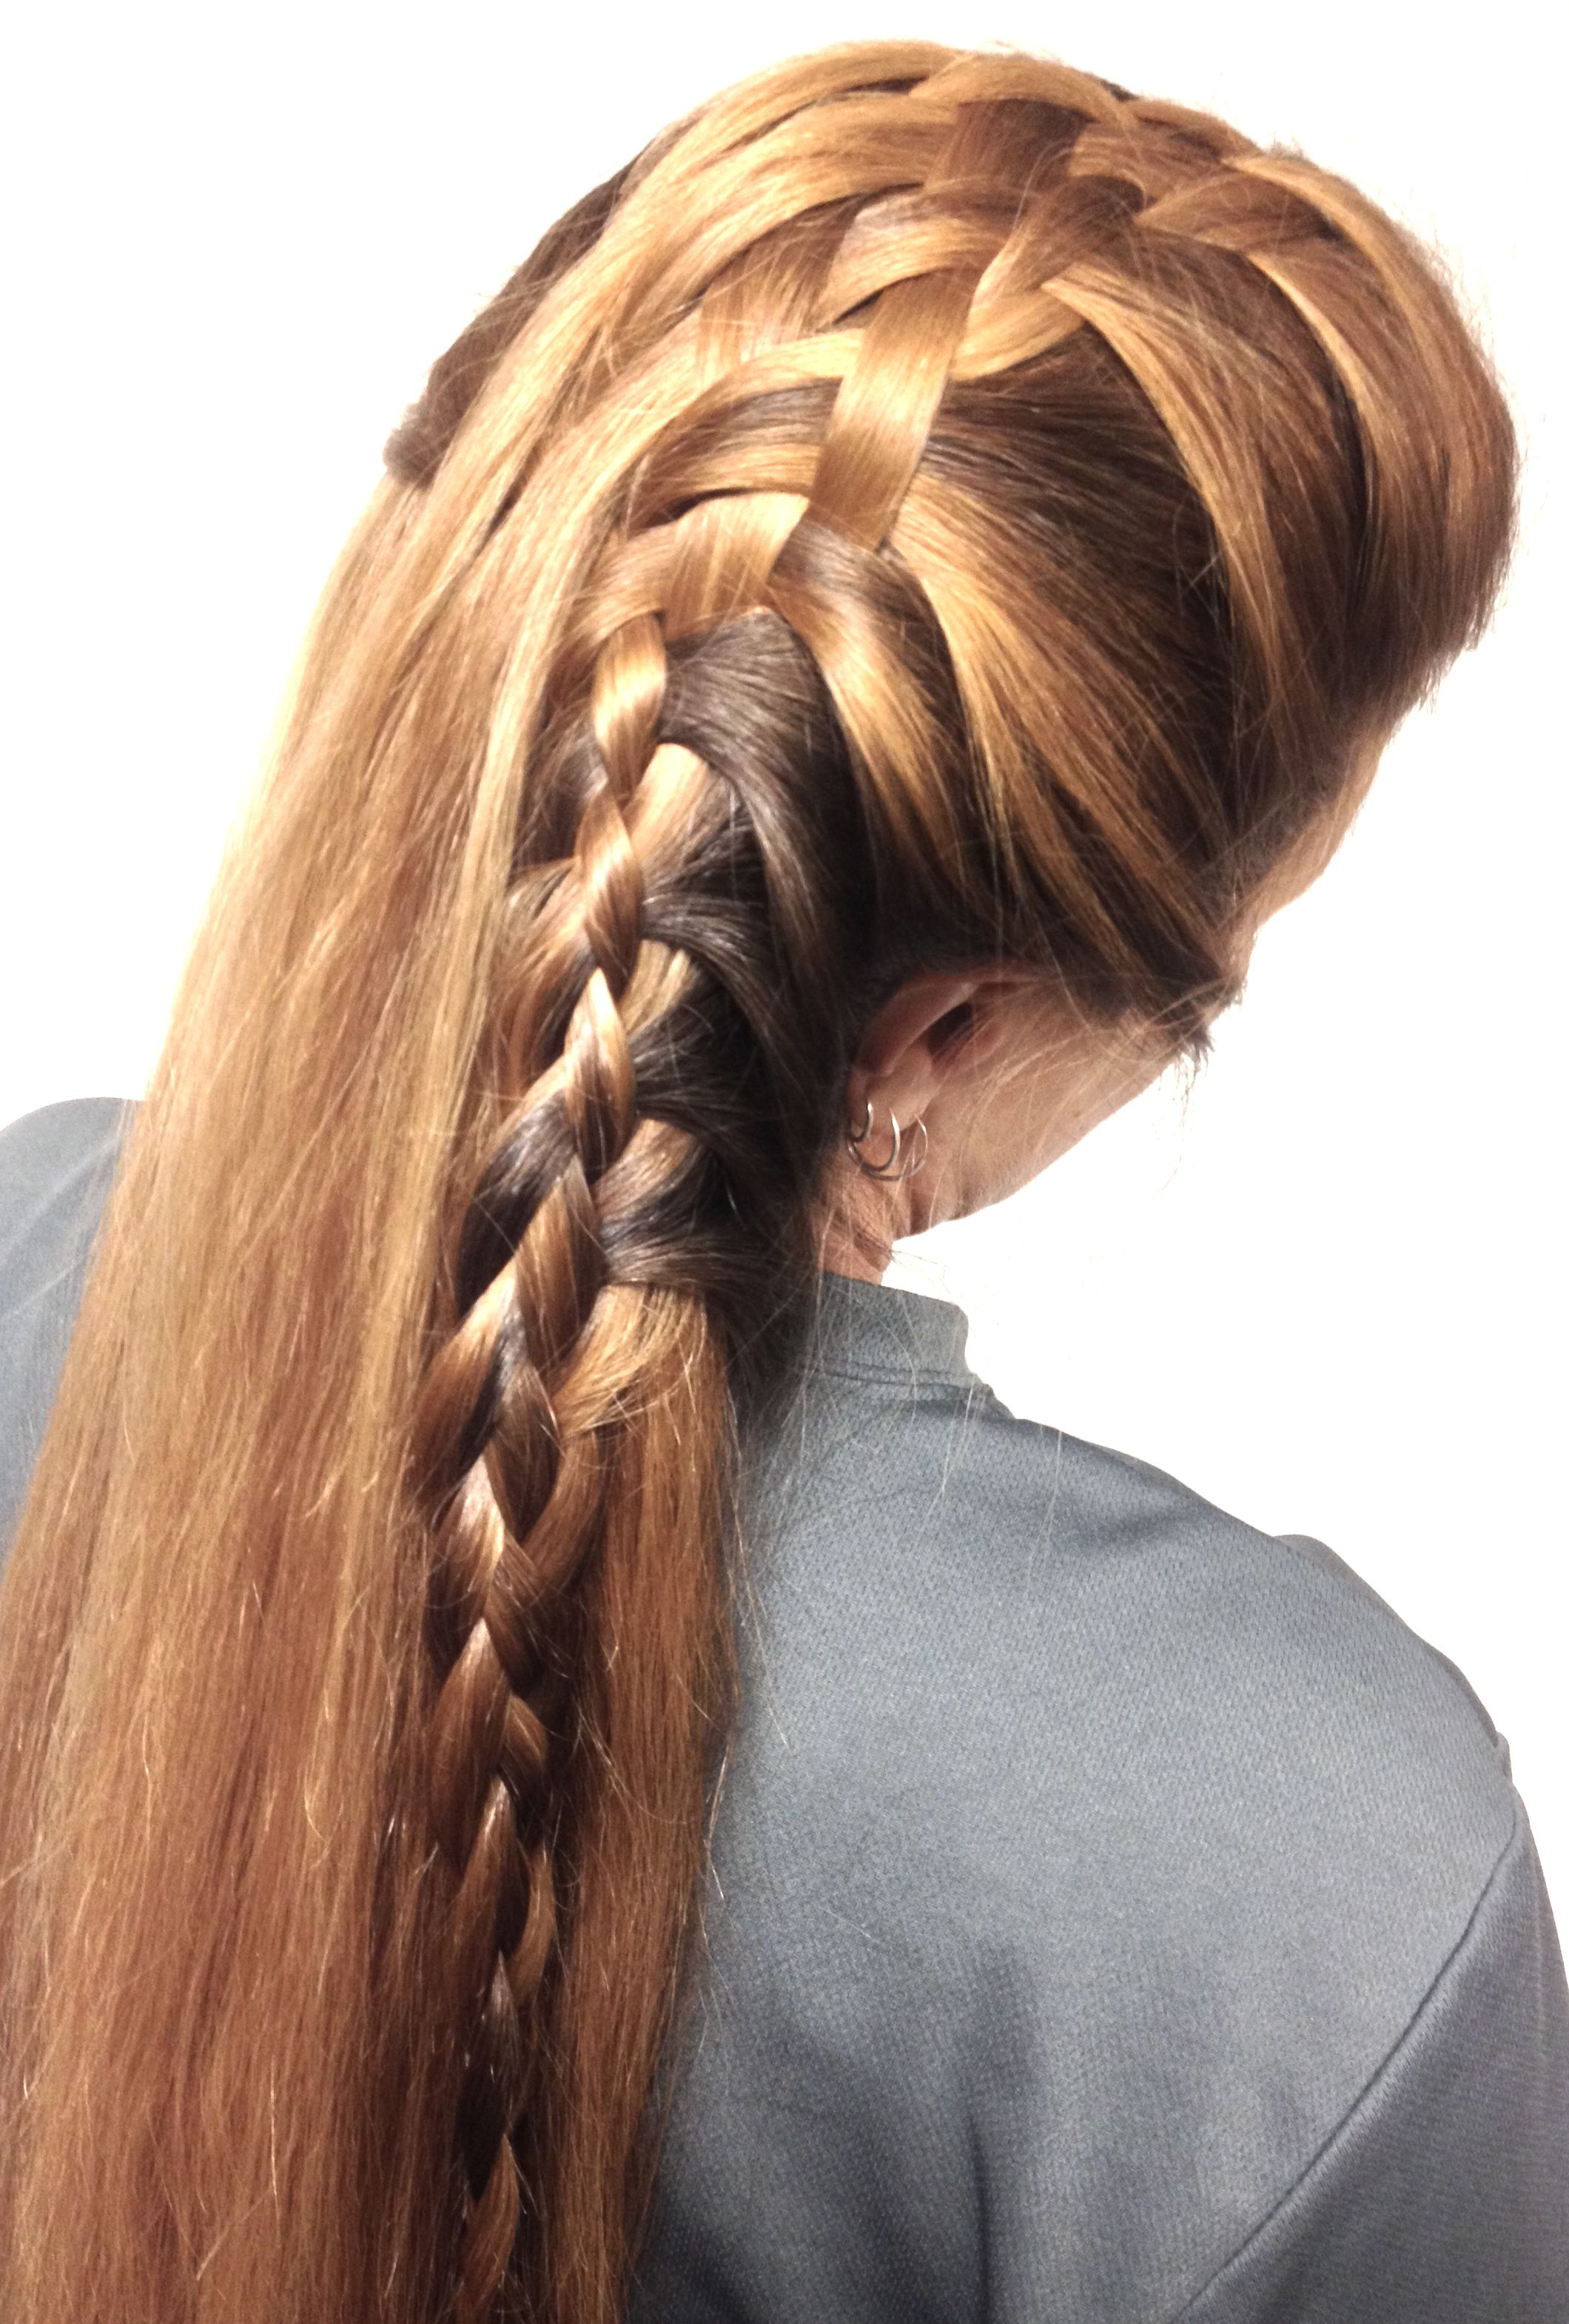 Braided Hairstyle Flow thru basket weave secured by a four strand